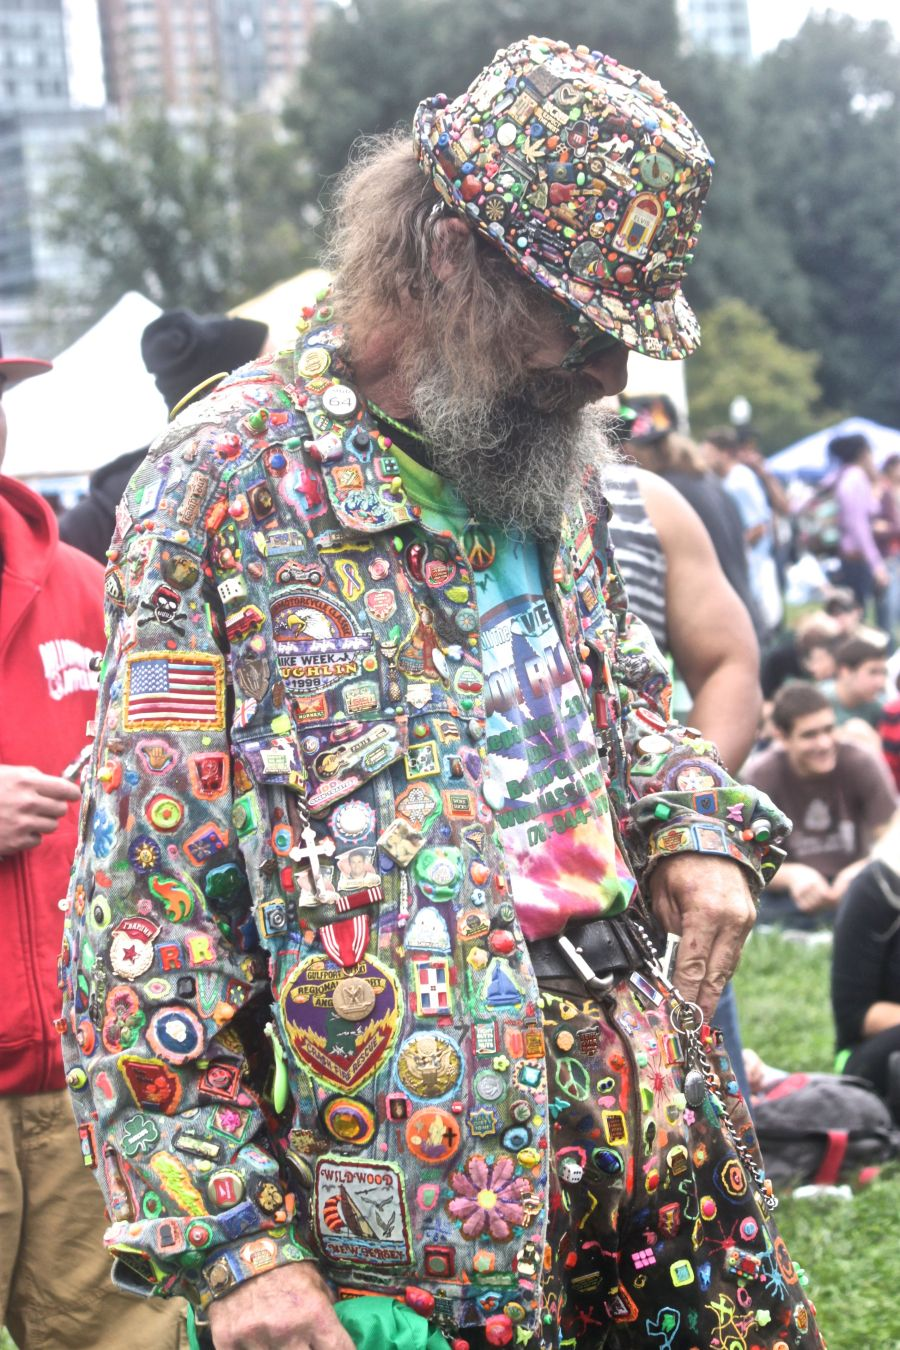 boston hemp fest 2013 man with patches all over suit